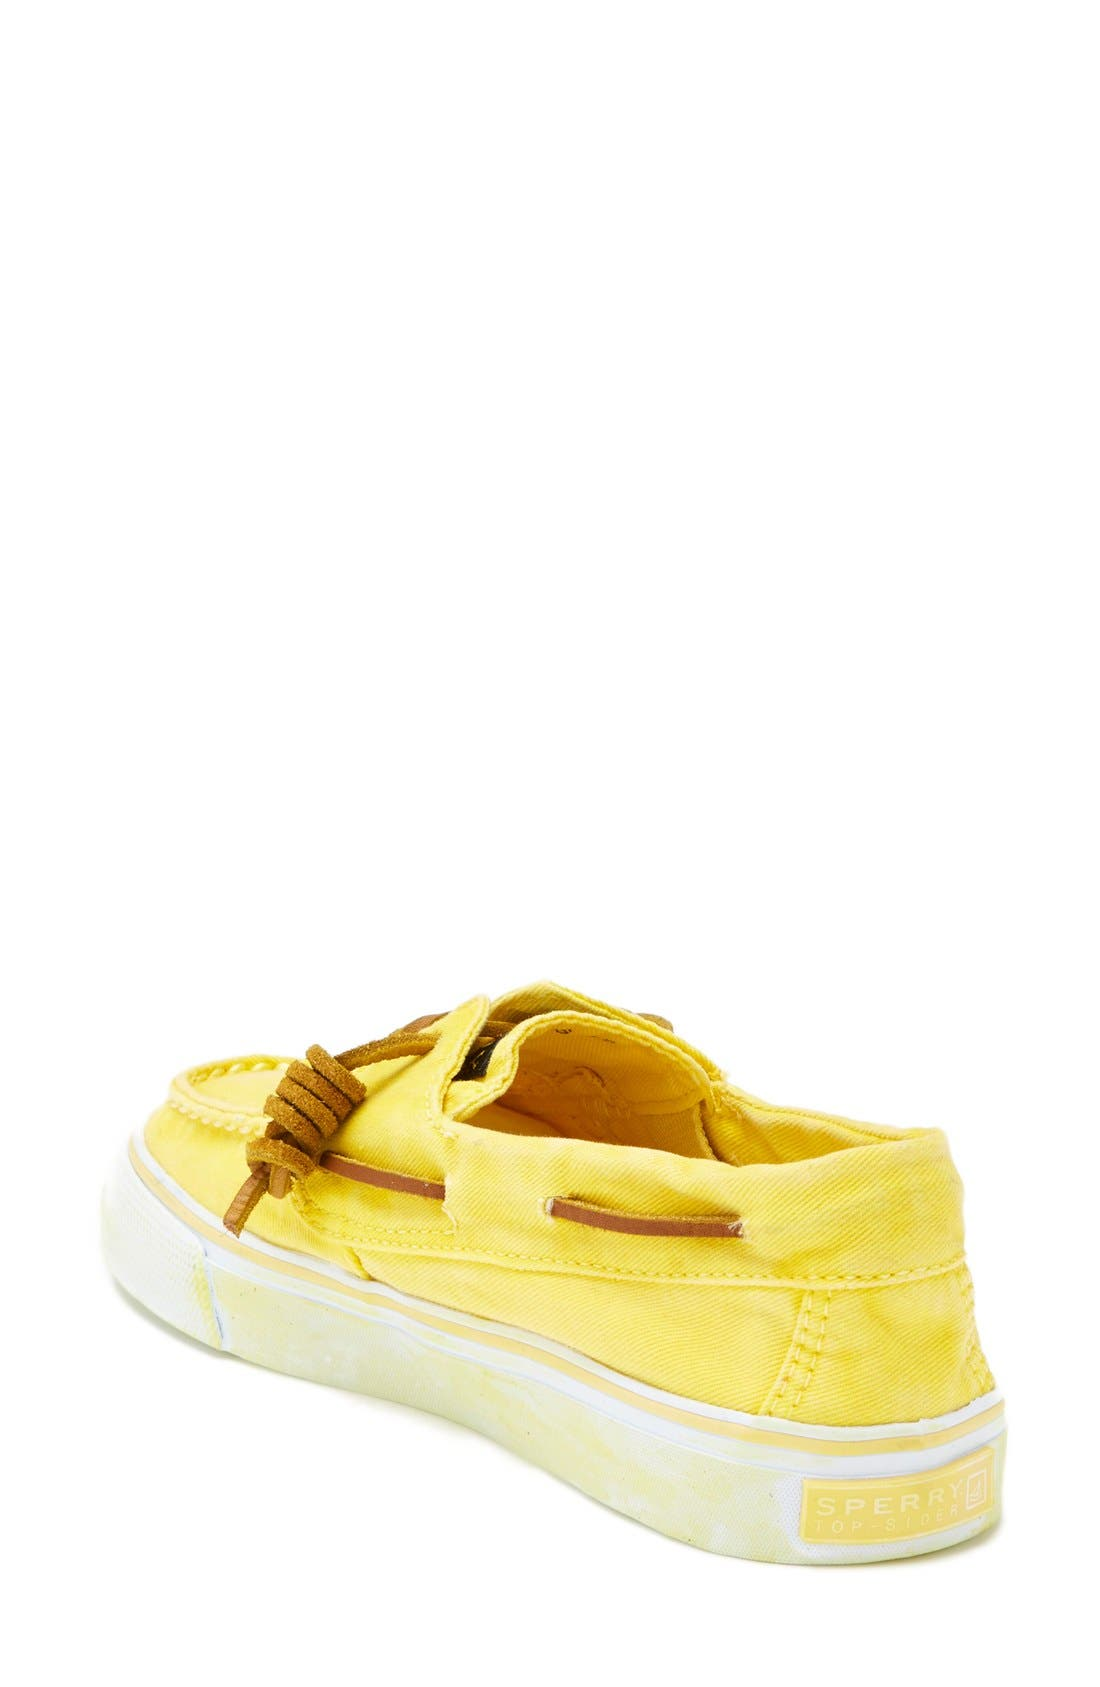 Top-Sider<sup>®</sup> 'Bahama' Sequined Boat Shoe,                             Alternate thumbnail 124, color,